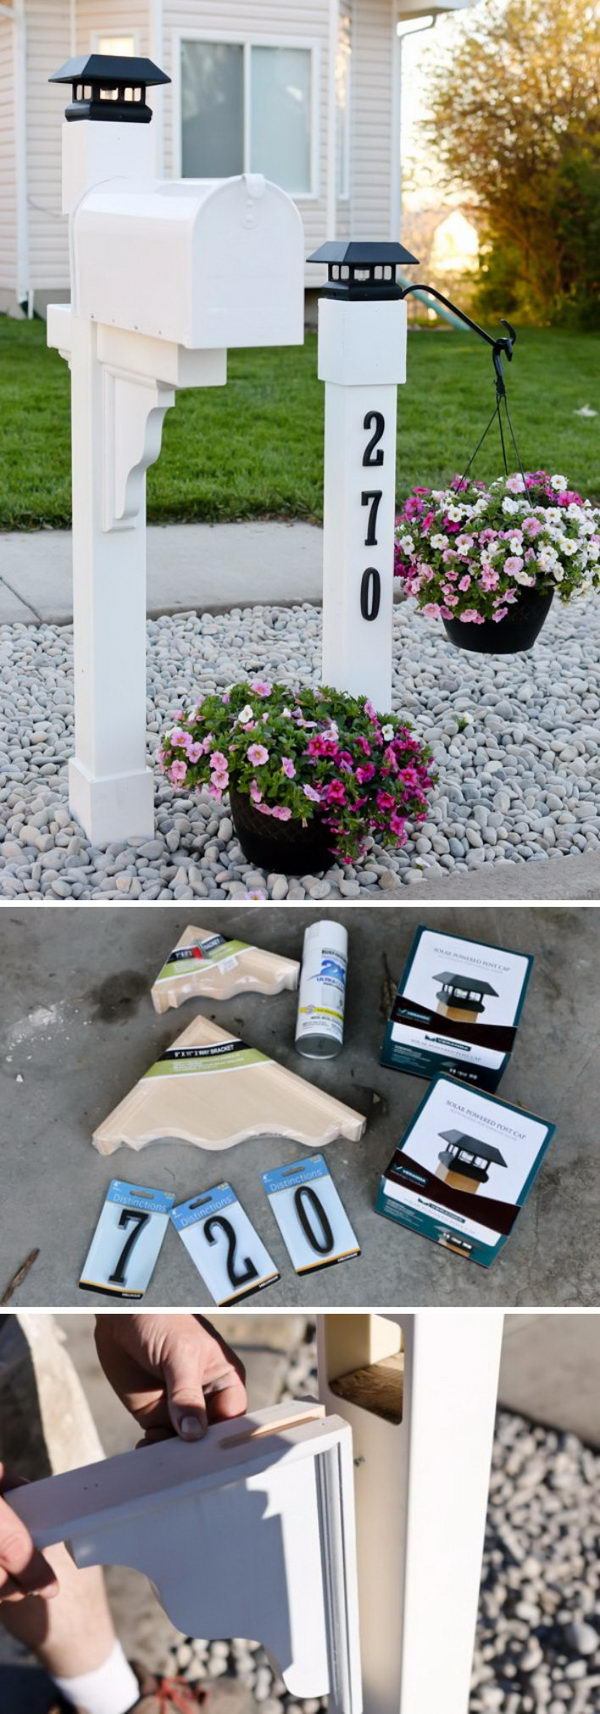 Make A Beautiful Mailbox For Curb Appeal Using Corbels.